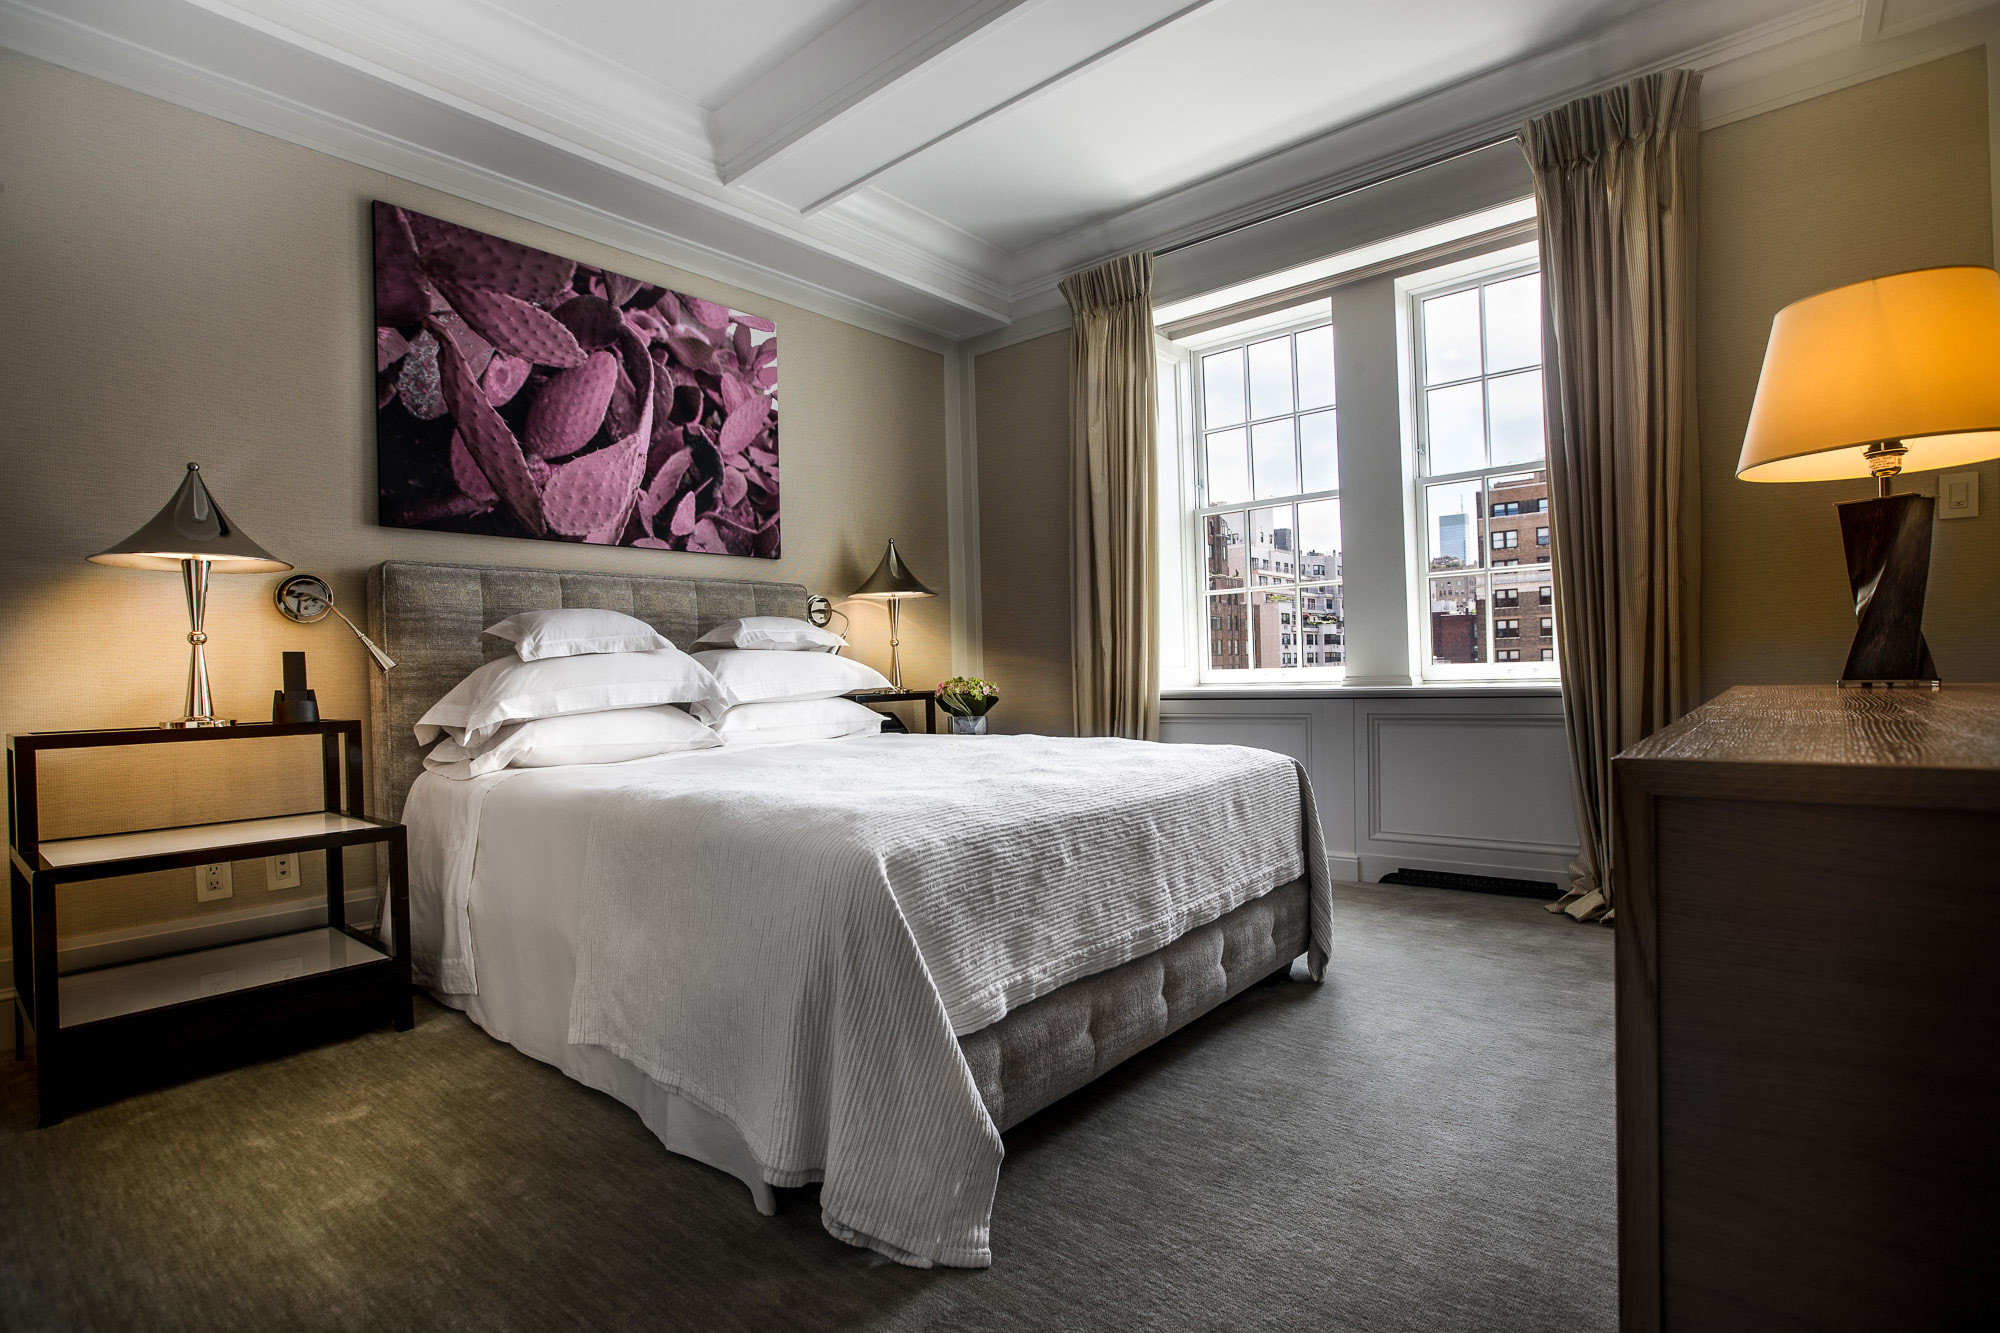 Hotels with 2 bedroom suites in new orleans www - Suites in new orleans with 2 bedrooms ...